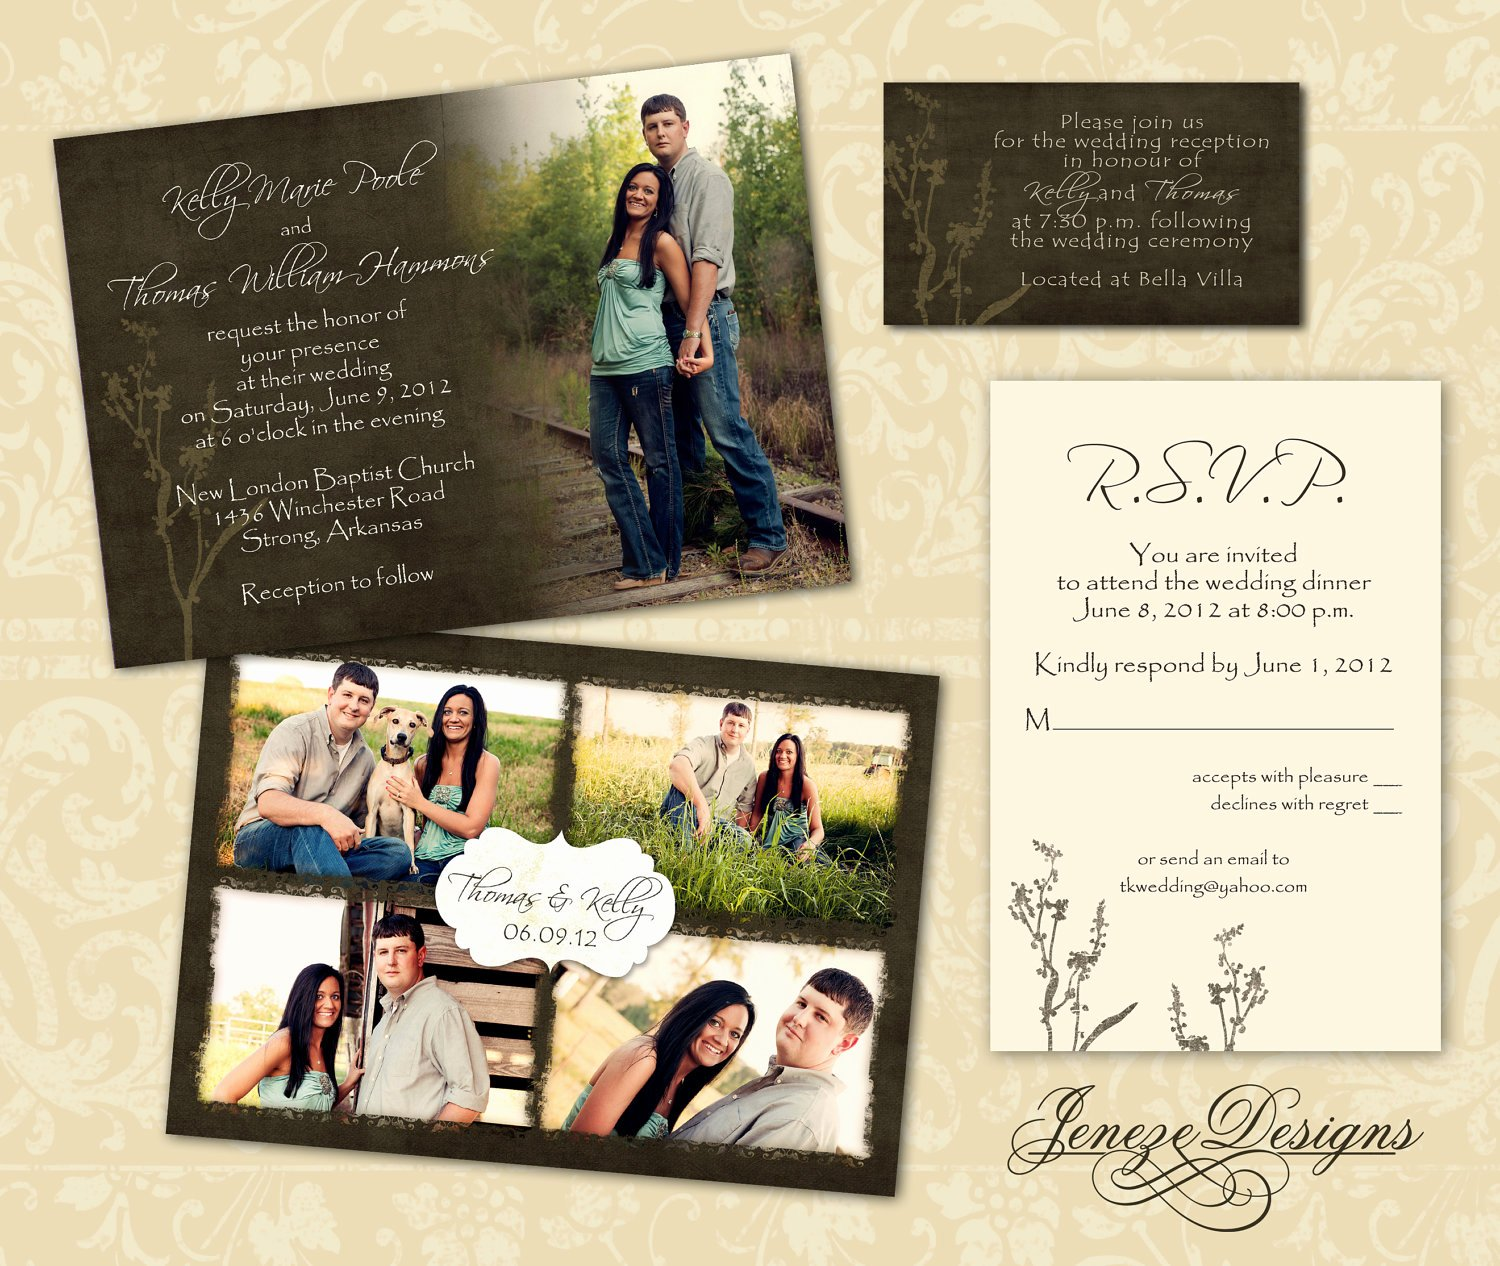 Wedding Invitations Photoshop Template Inspirational Wedding Invitation Template Graphers and Shop